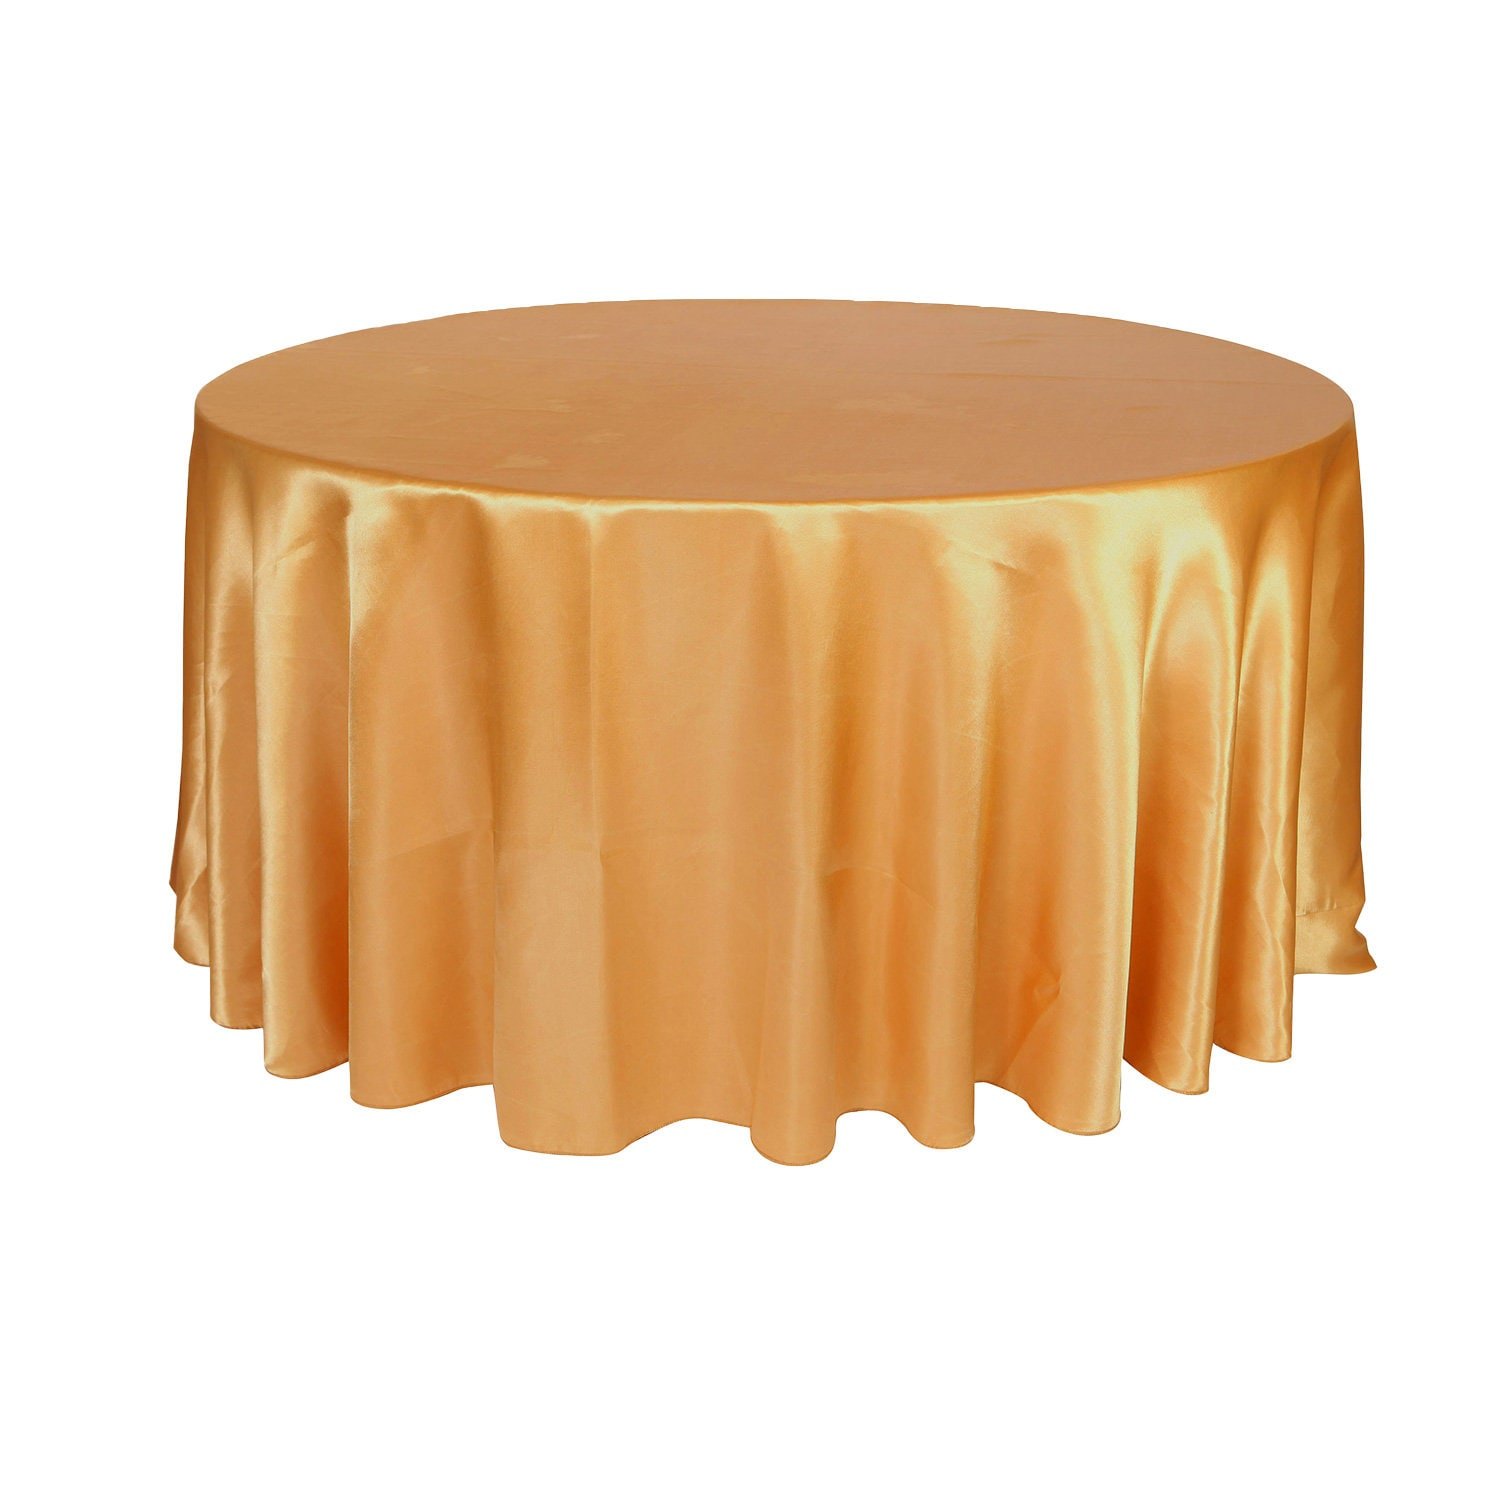 Beau Gold 120 Inch Round Satin Tablecloth | Wholesale Wedding Tablecloth, Round  Table Linens